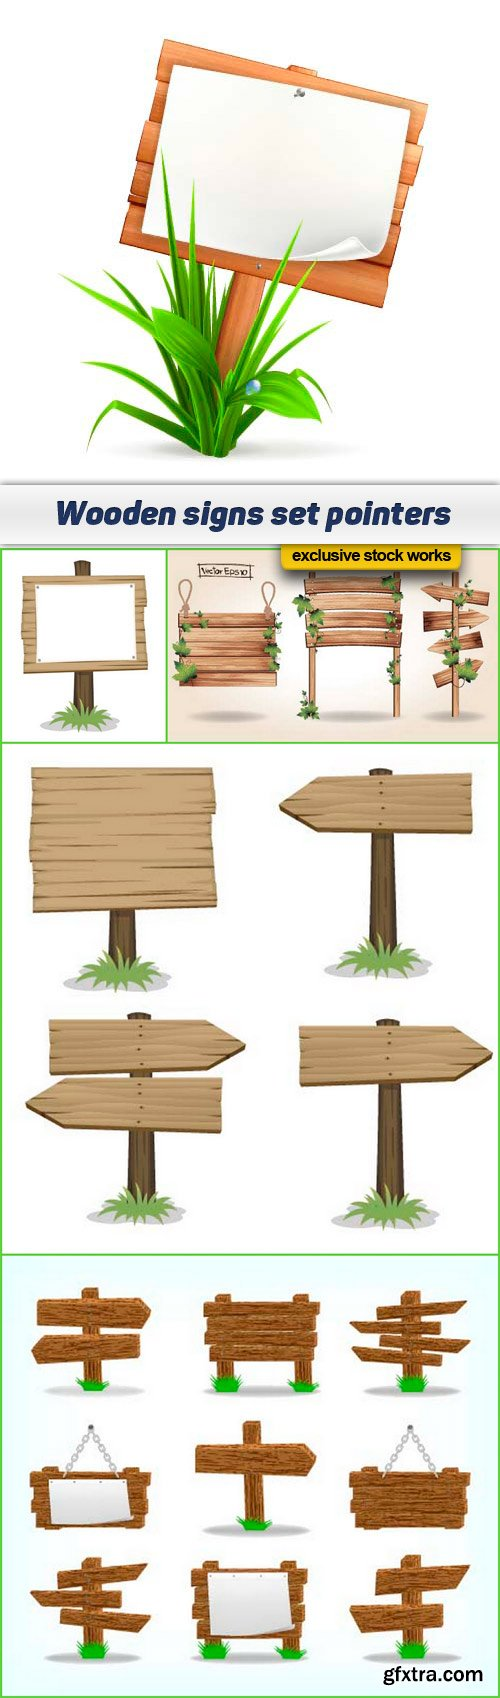 Wooden signs set pointers 5x EPS